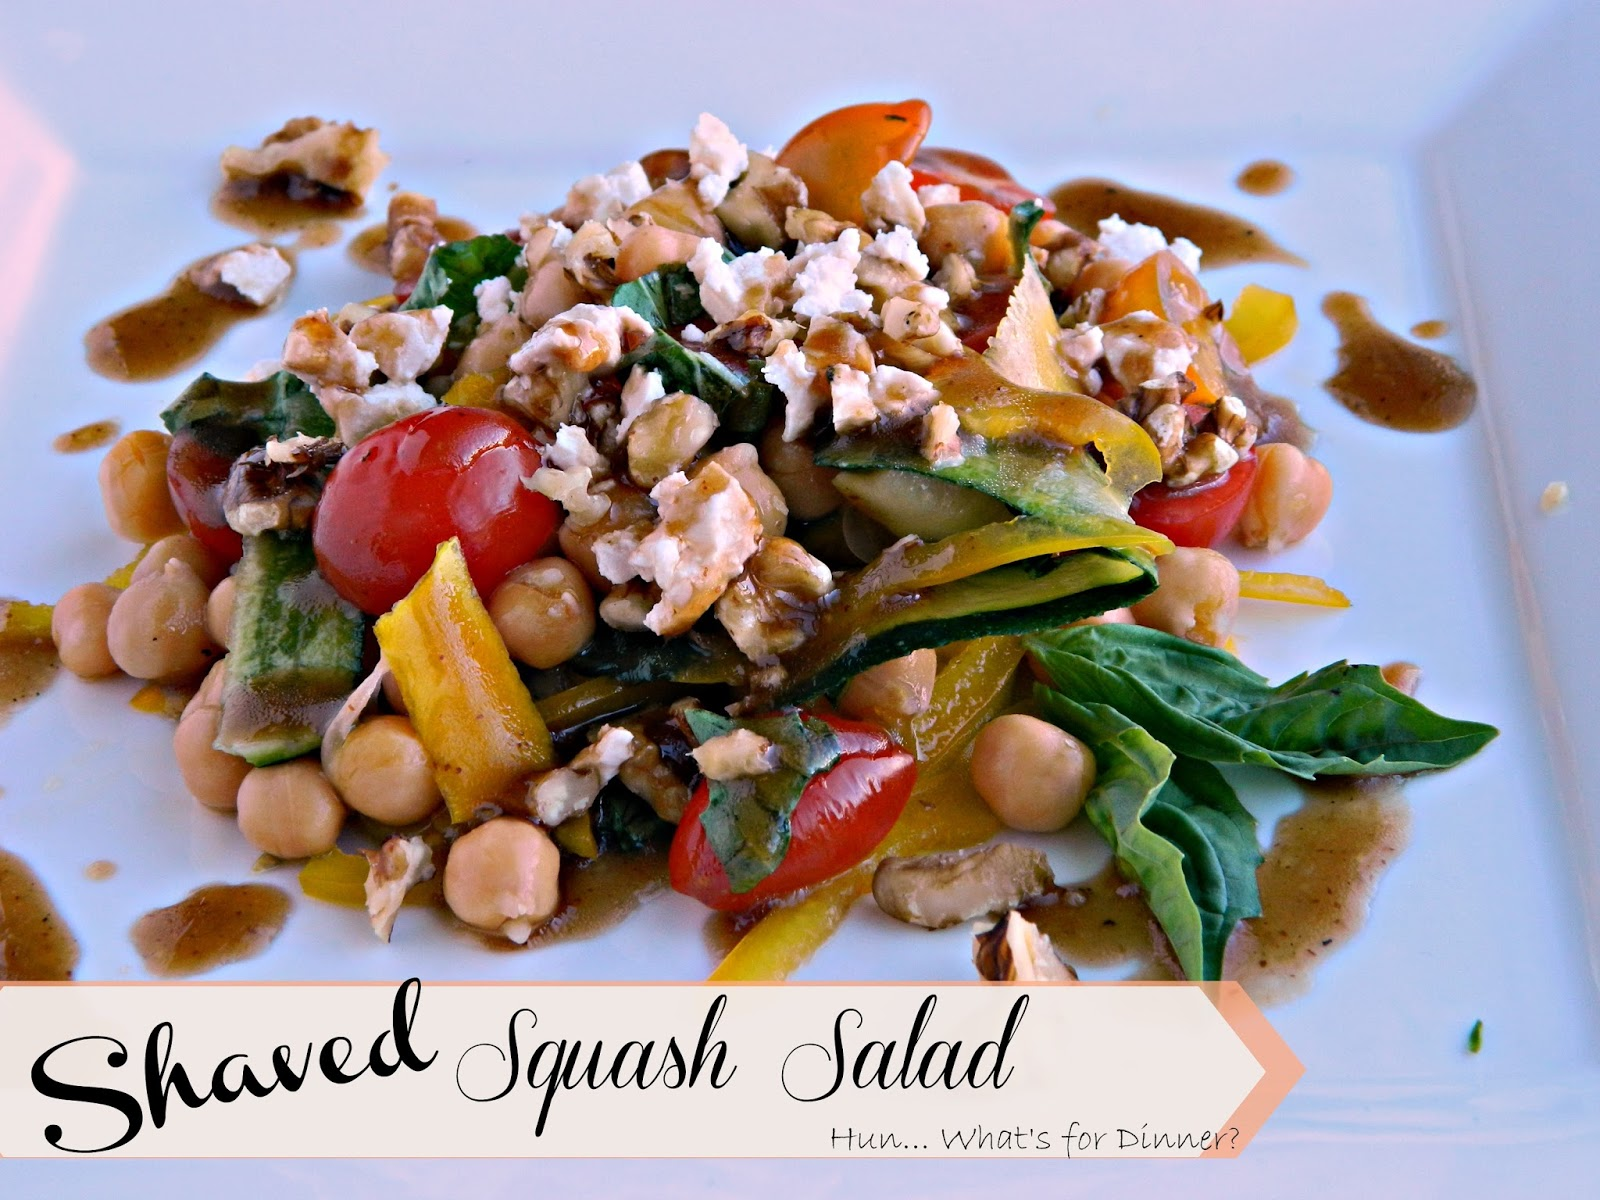 Hun... What's for Dinner?: Shaved Squash Salad & Cookbook Review